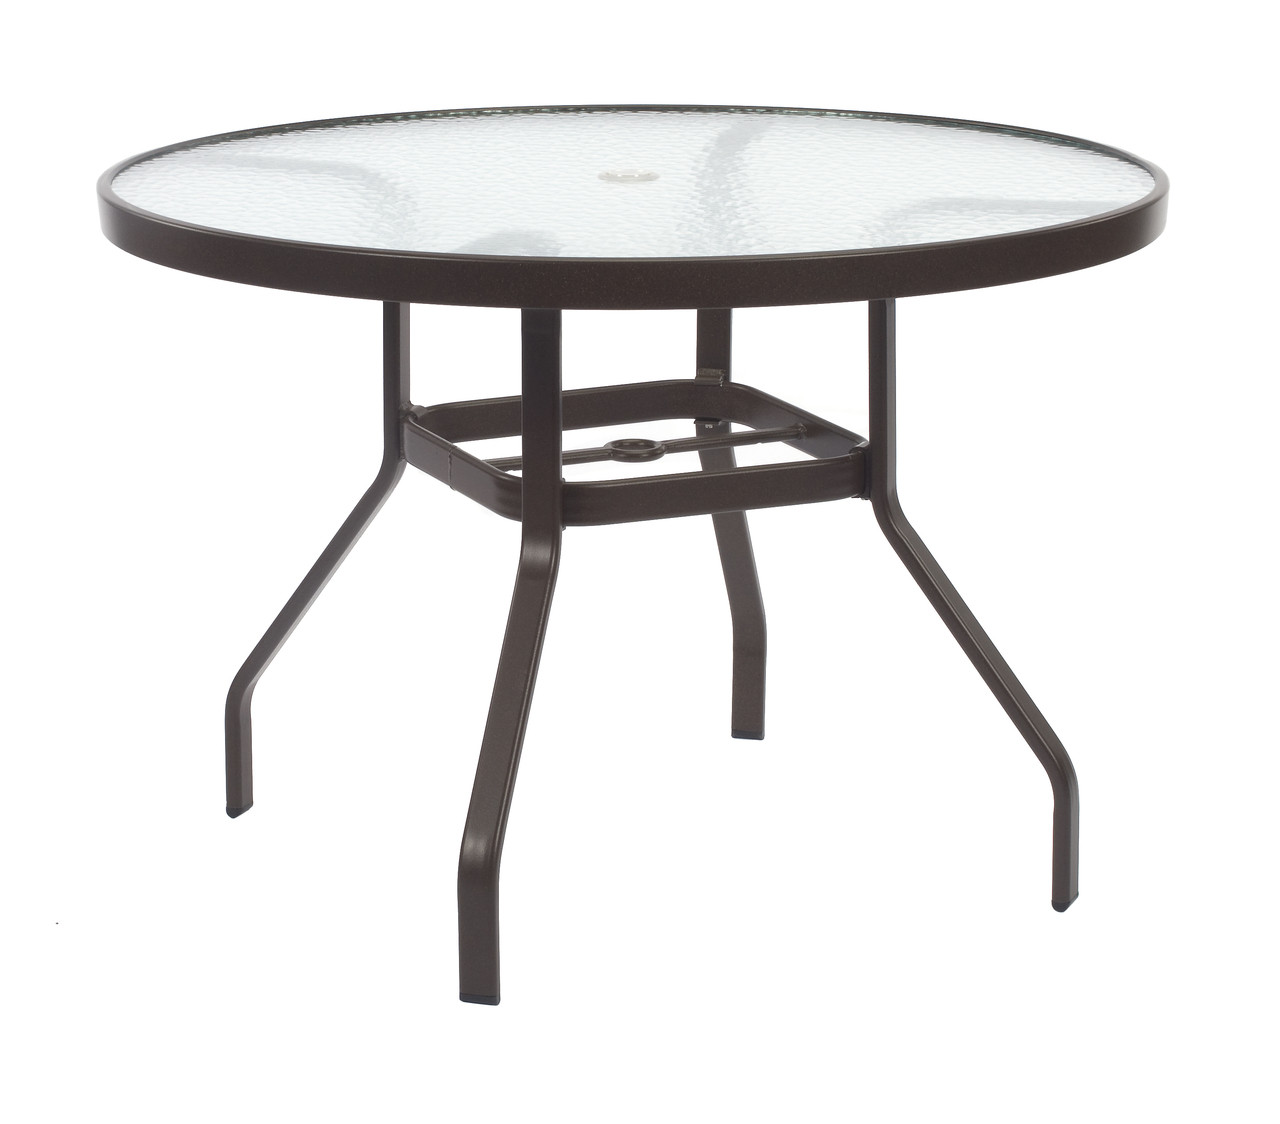 Resort Contract Acrylic Round Dining Table